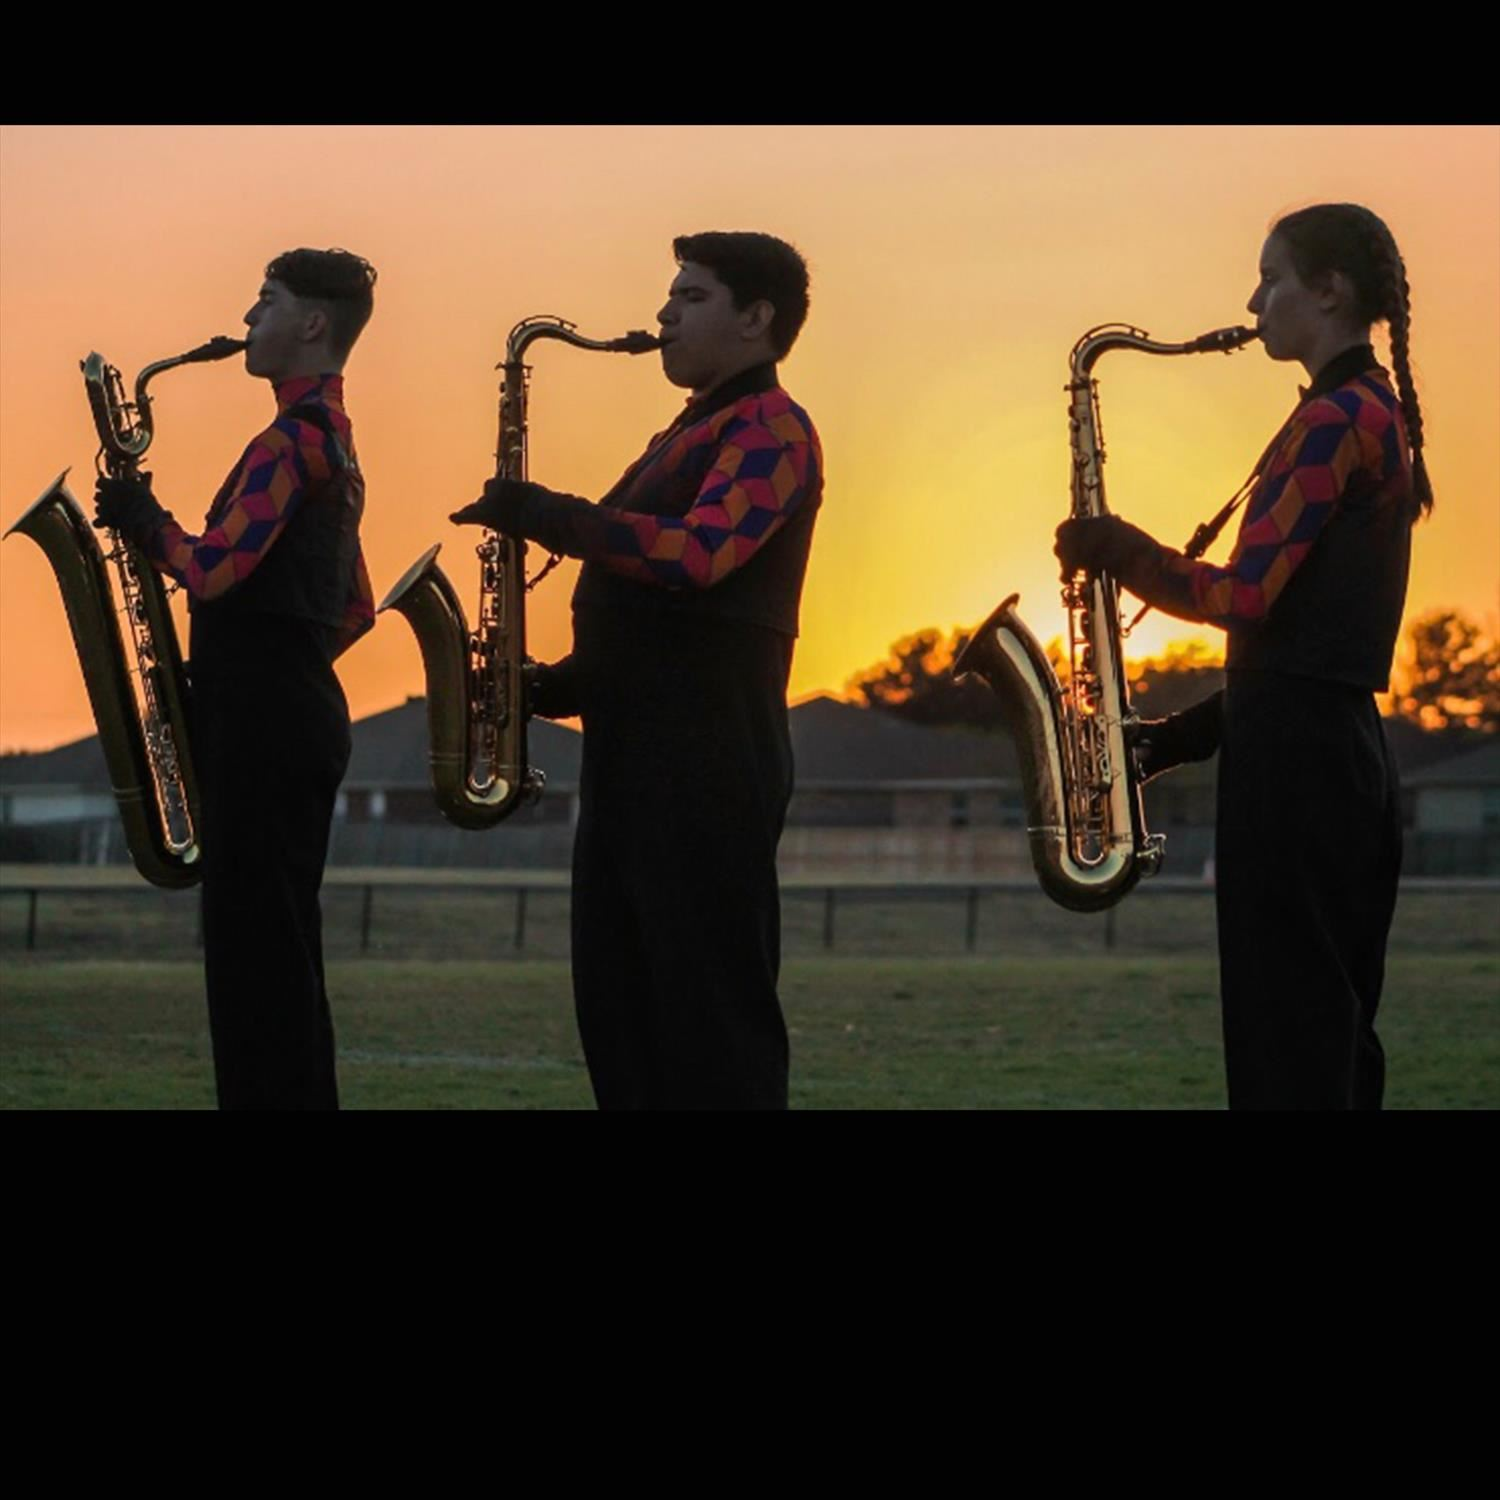 Students playing instruments with setting sun behind